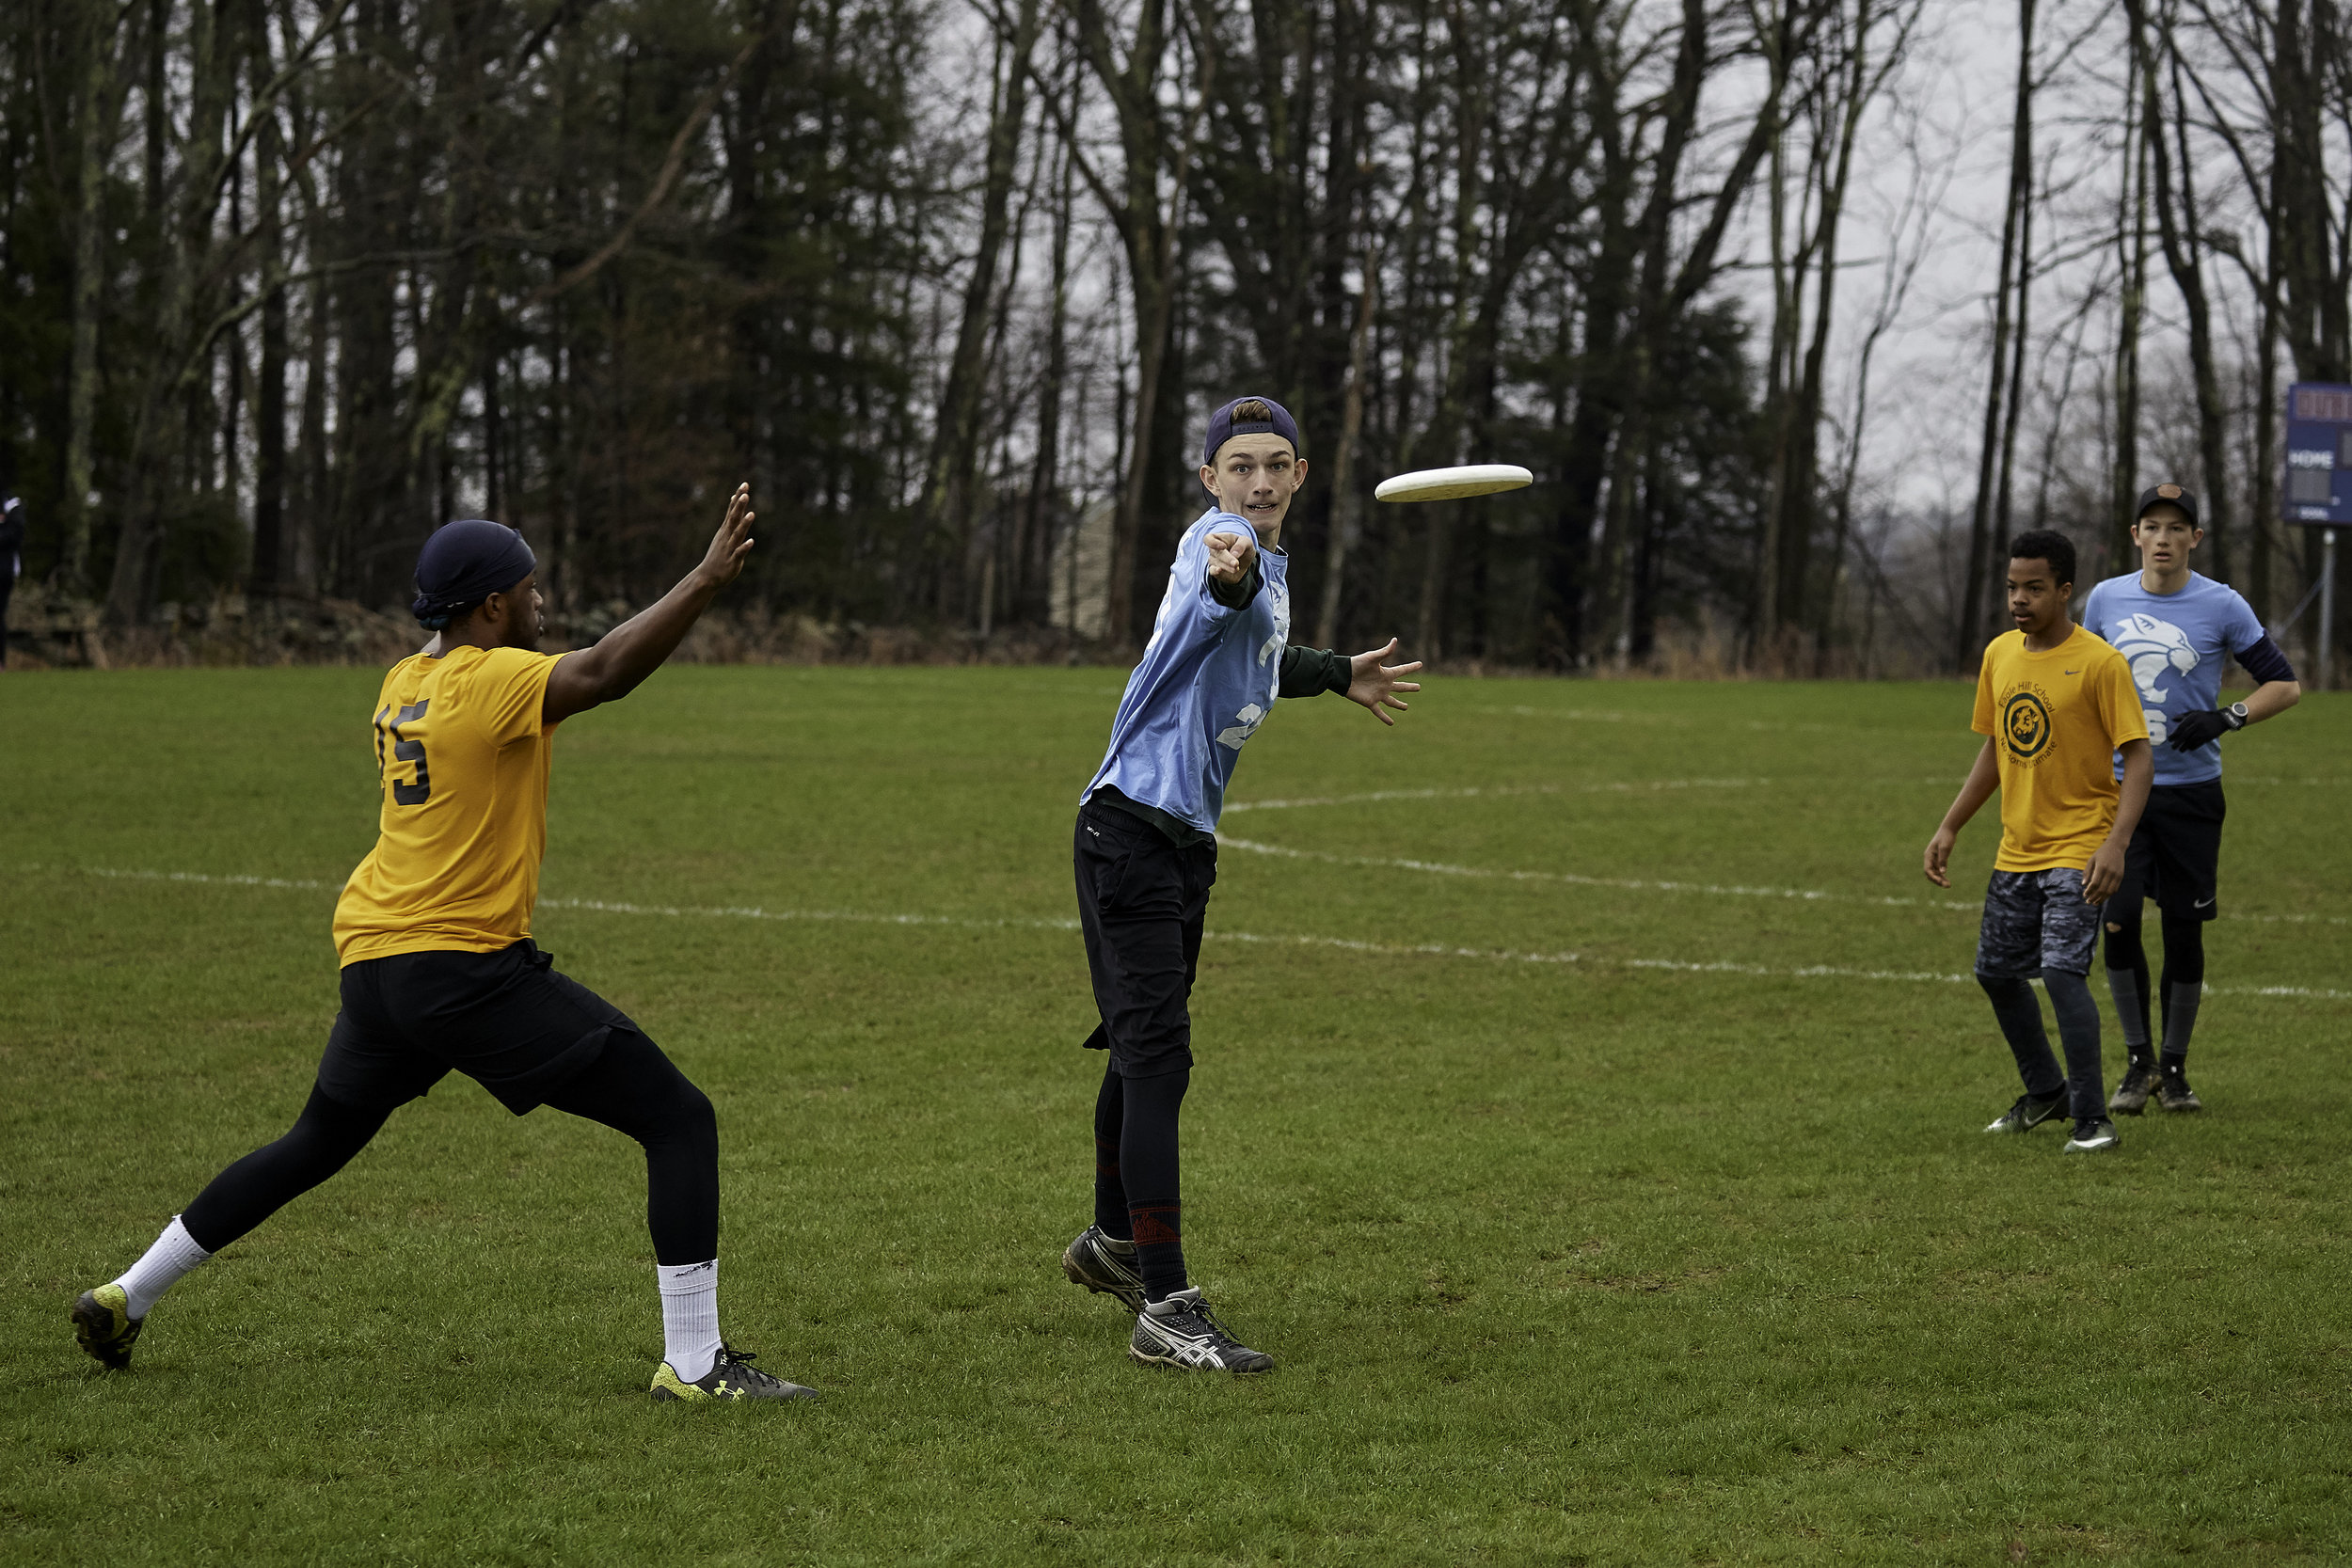 Ultimate Frisbee vs. Eagle Hill School - May 3, 2019 - 188307.jpg